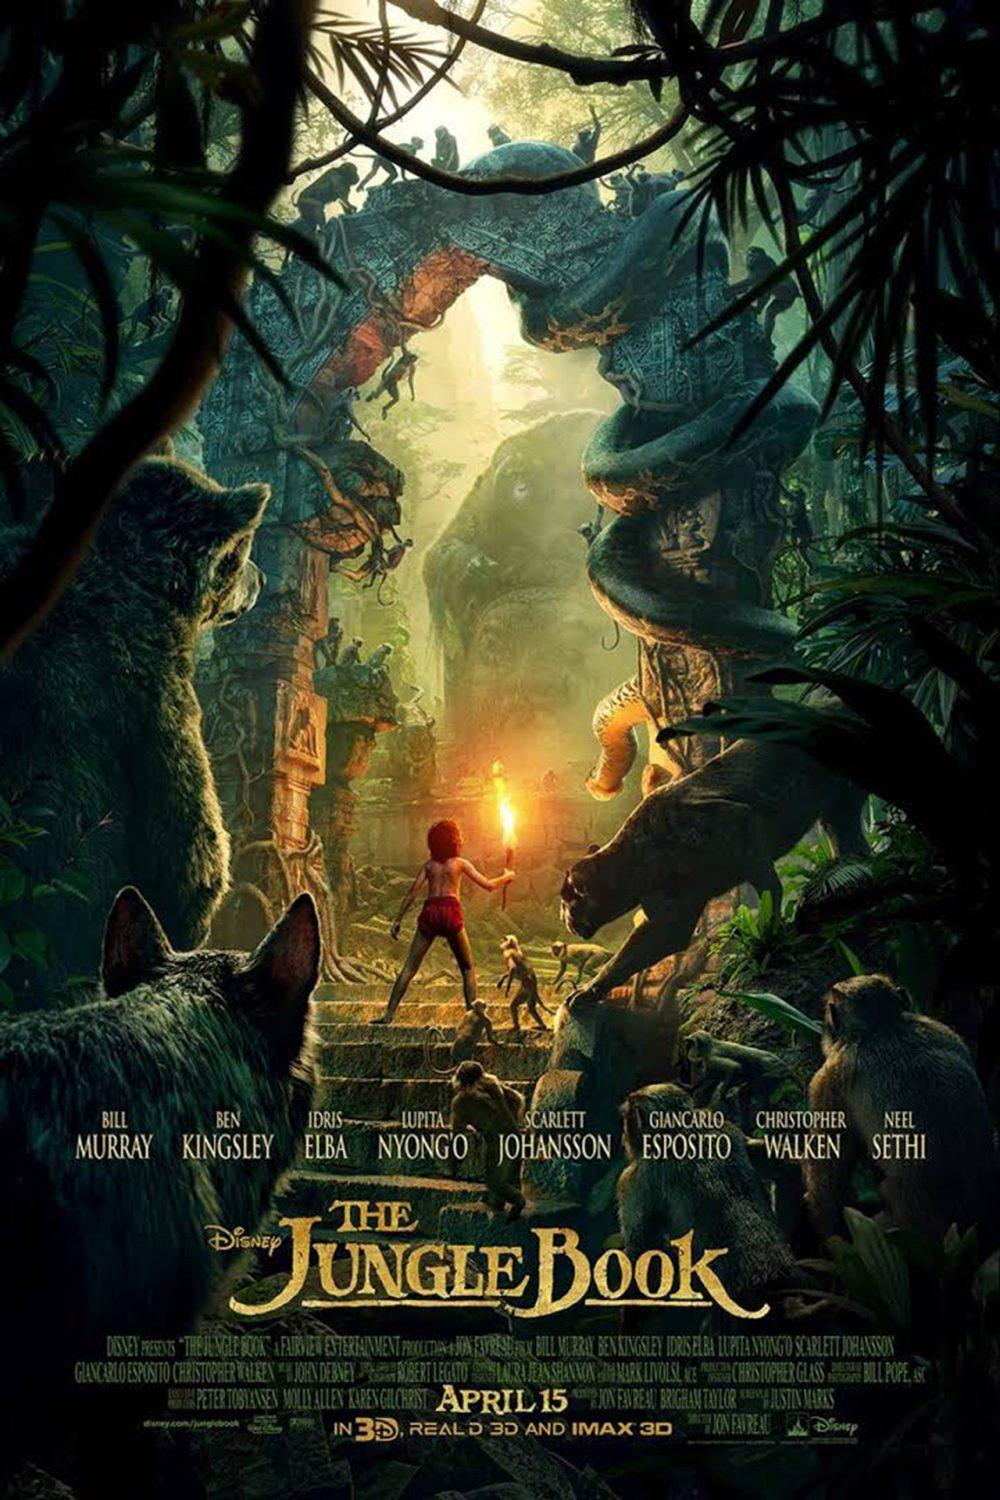 Poster+from+Disney%27s+The+Jungle+Book